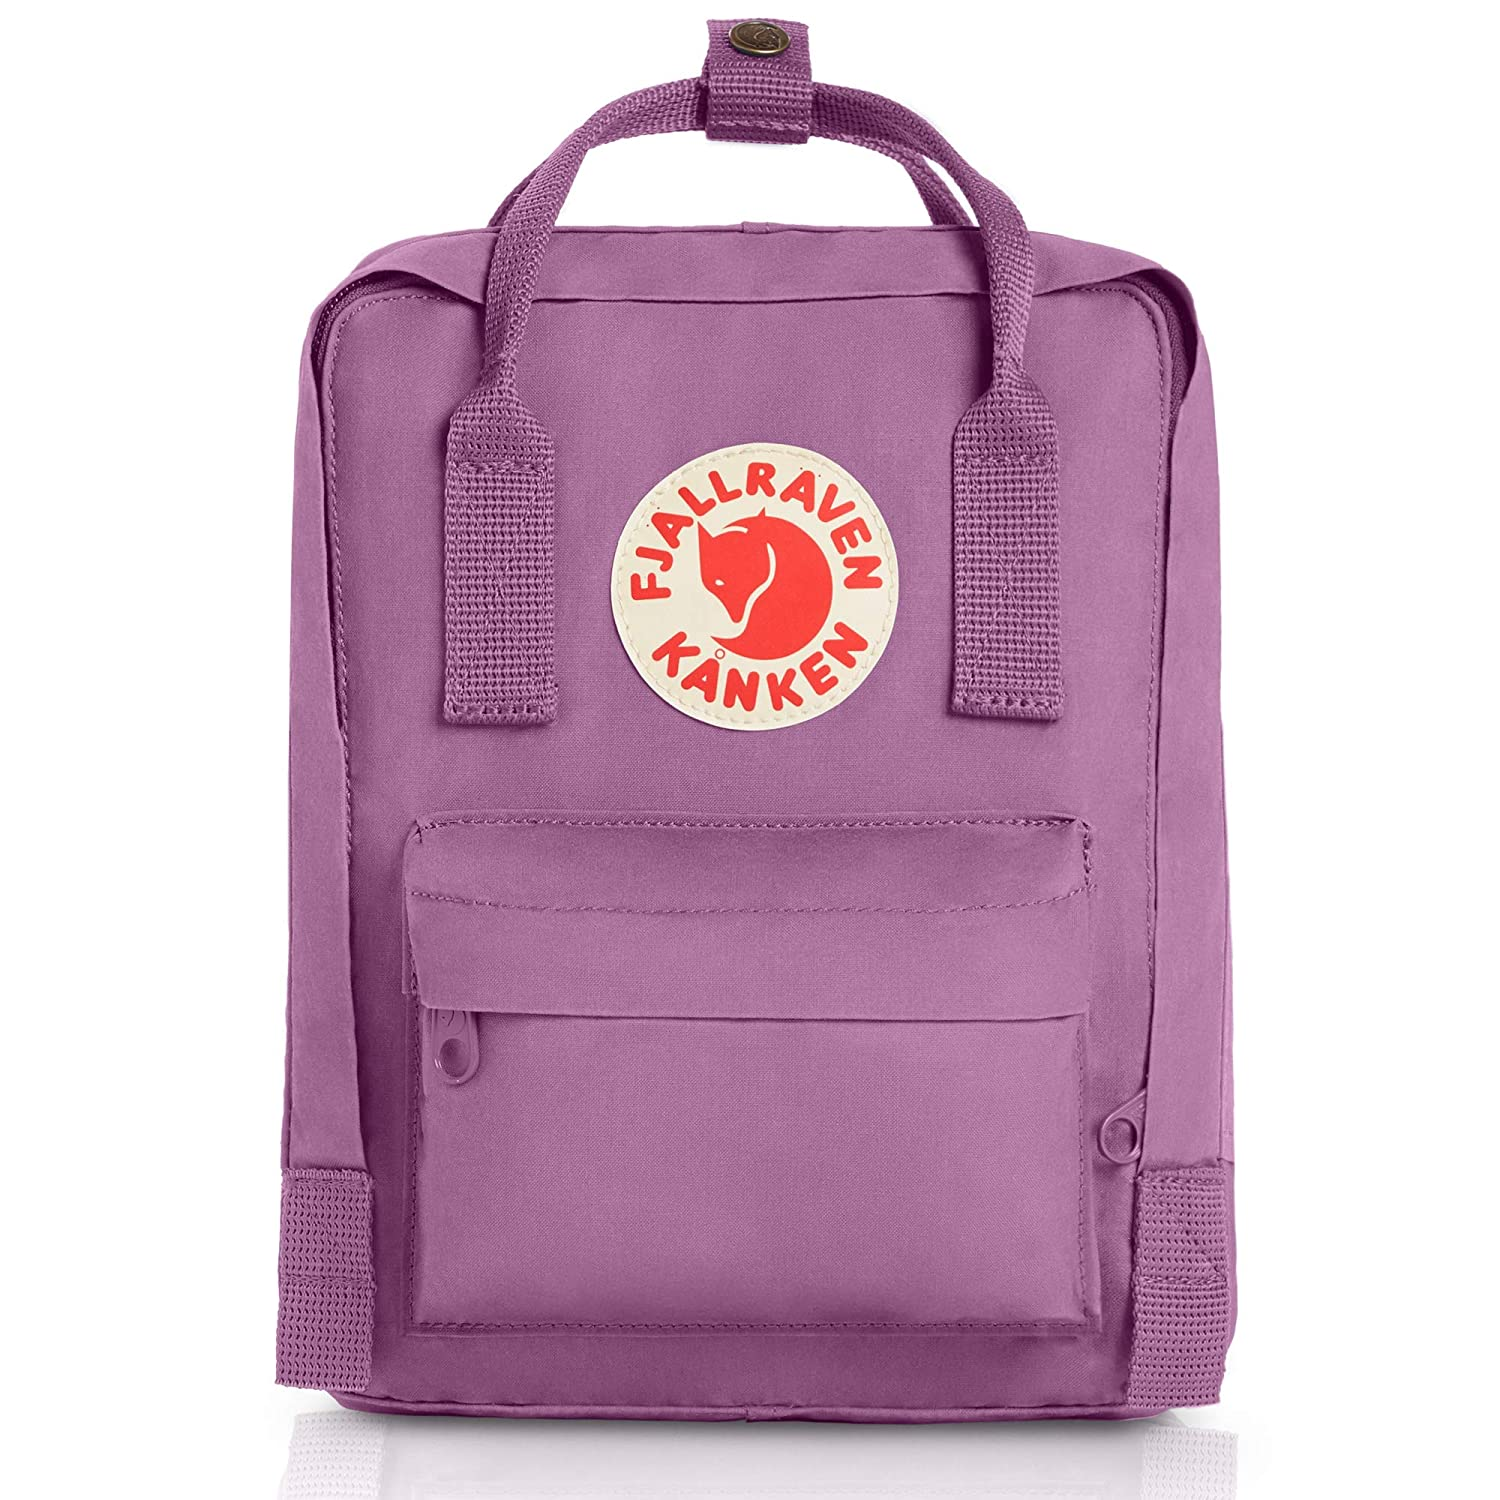 2c480a033a Amazon.com  Fjallraven - Kanken Mini Classic Backpack for Everyday ...